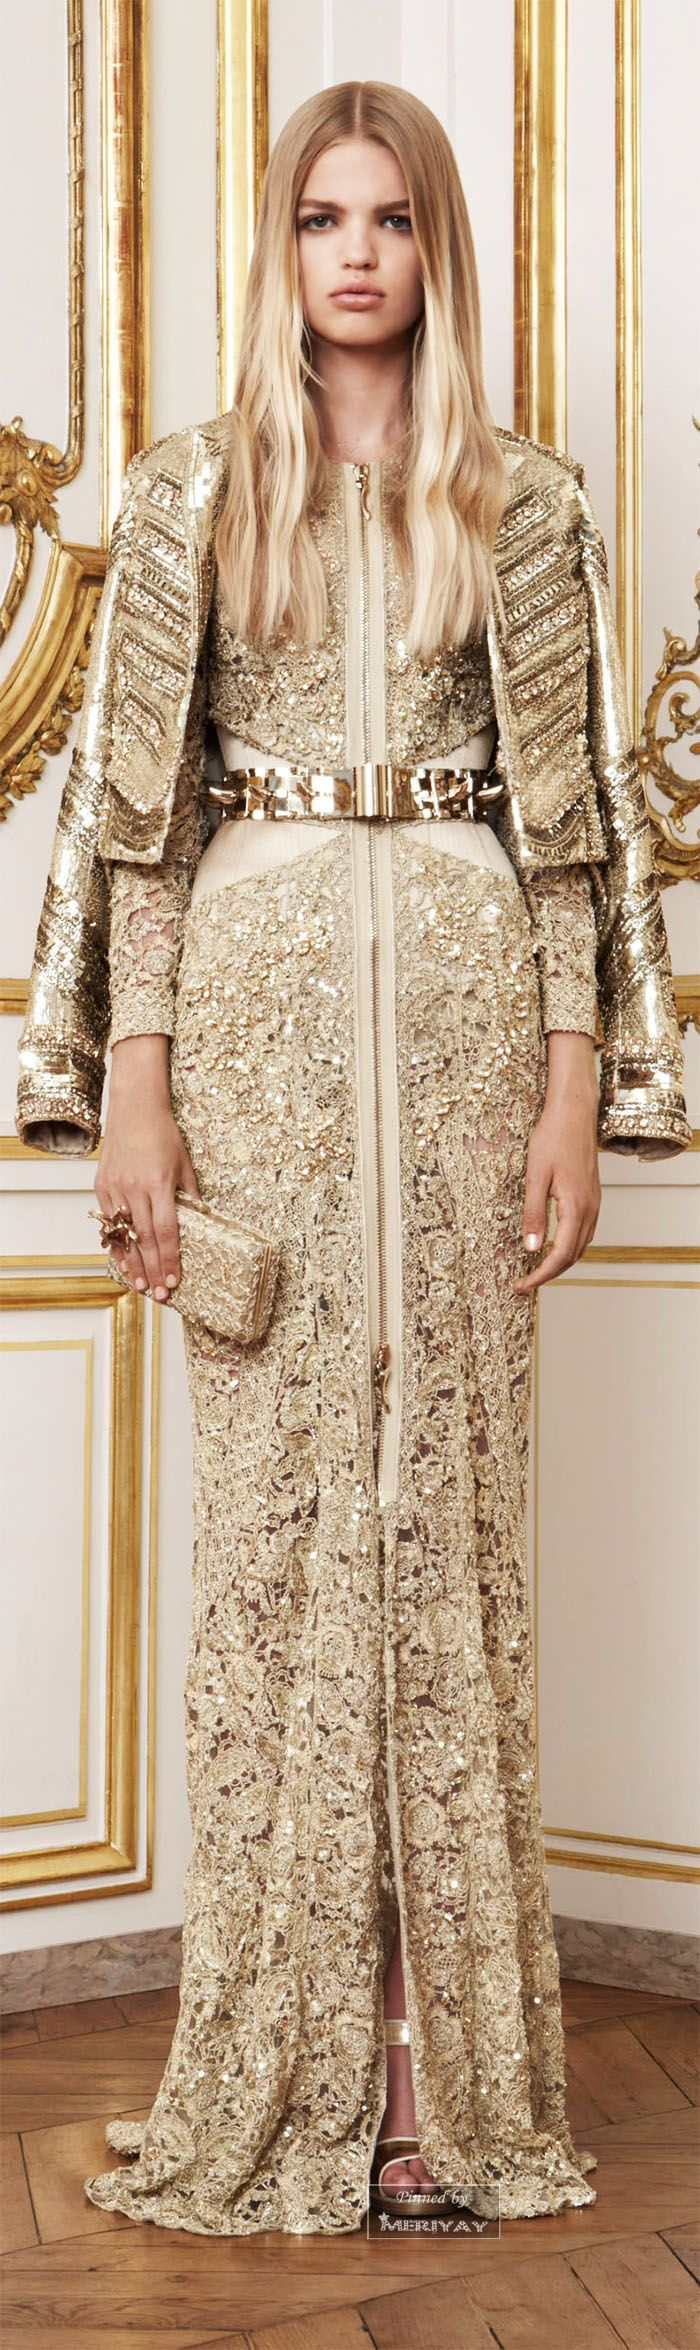 Givenchy Haute Couture.